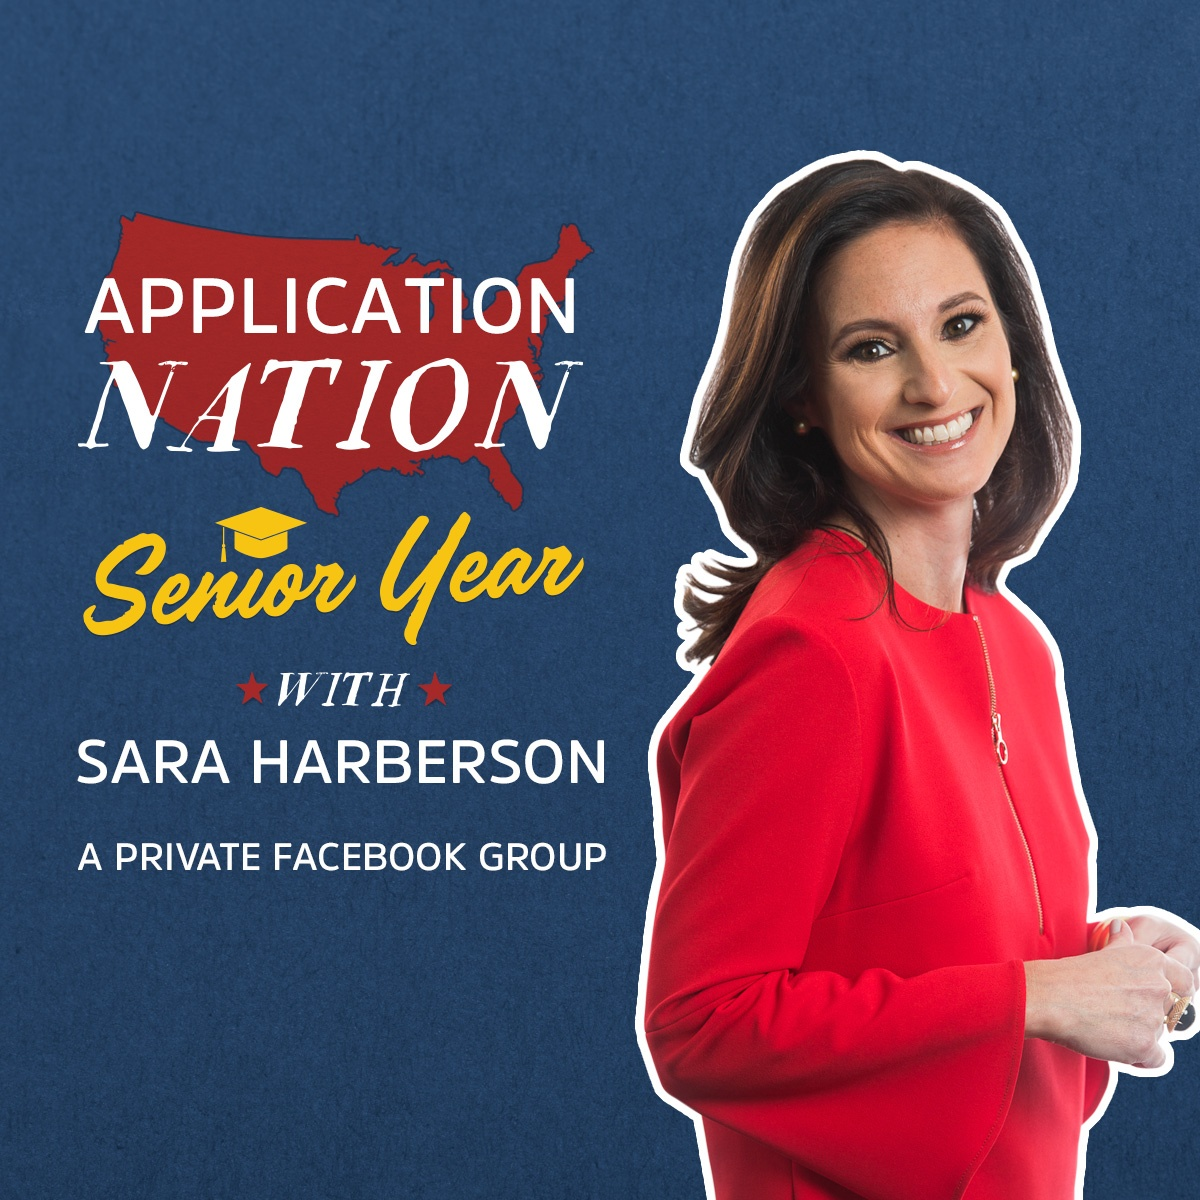 Application Nation - Senior Year